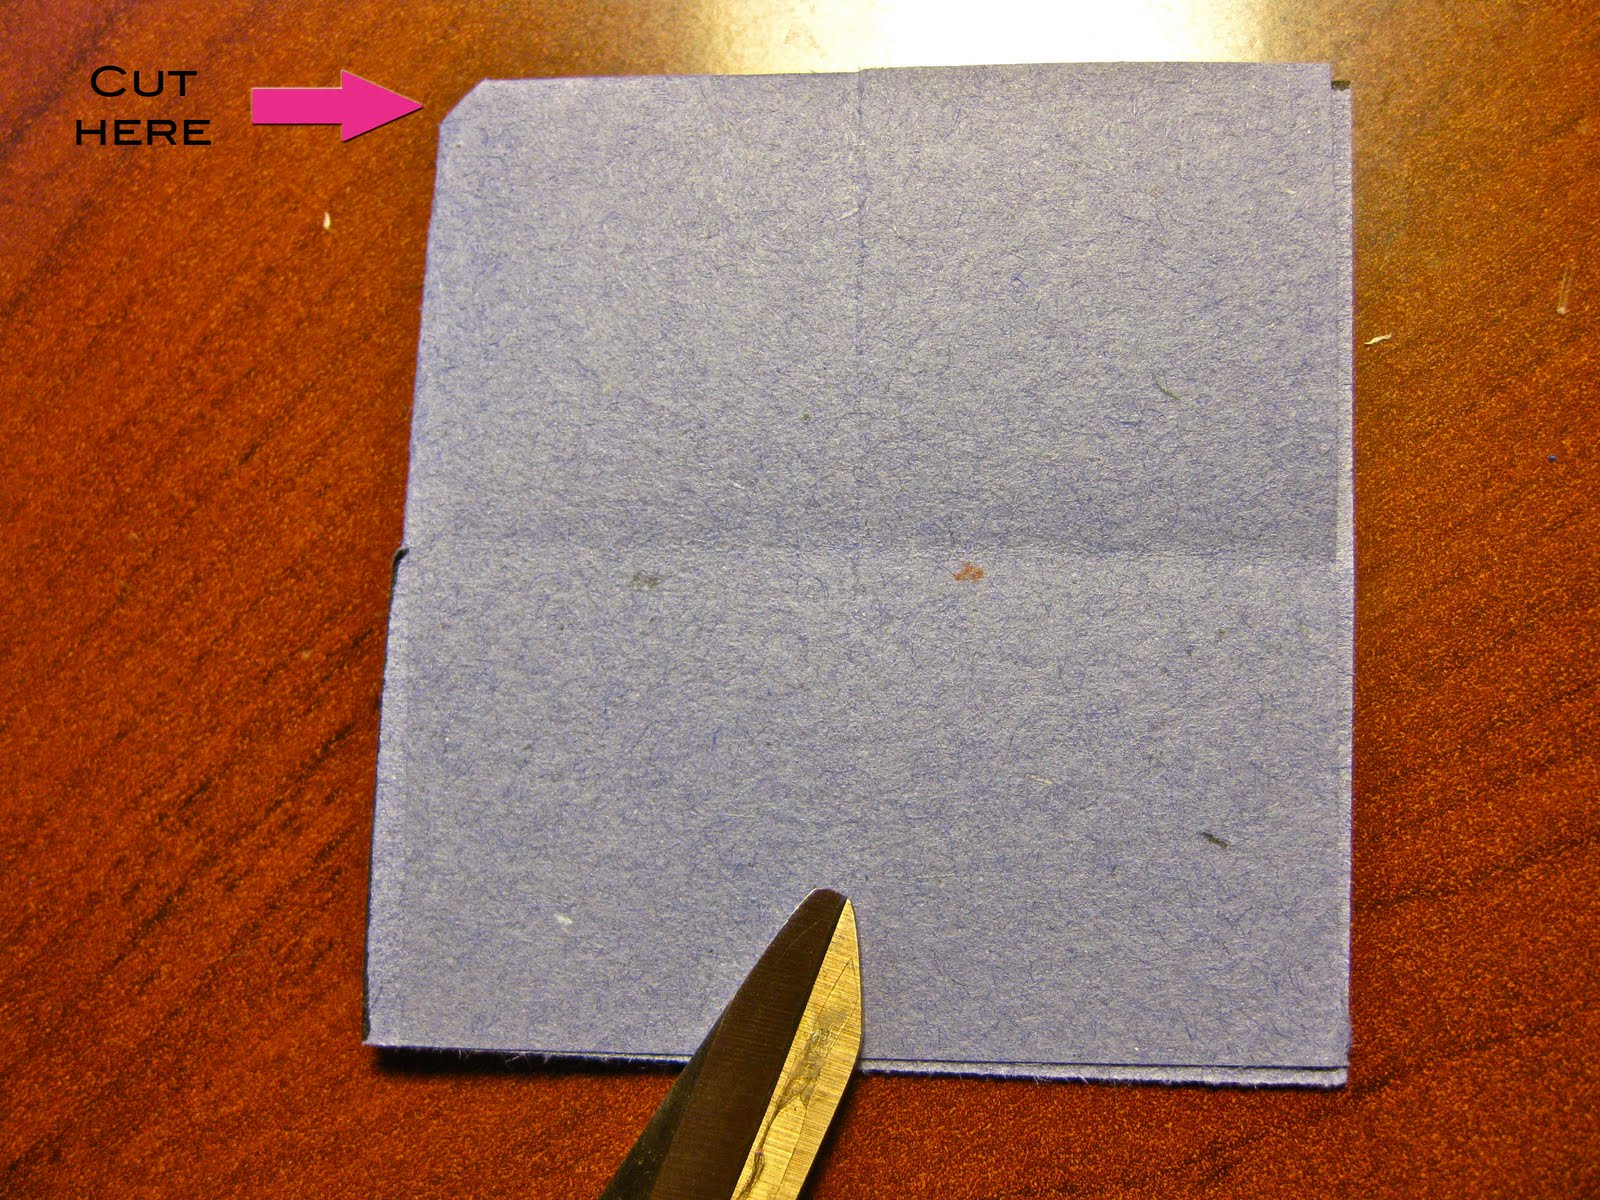 how to cut 4 inch paper hole